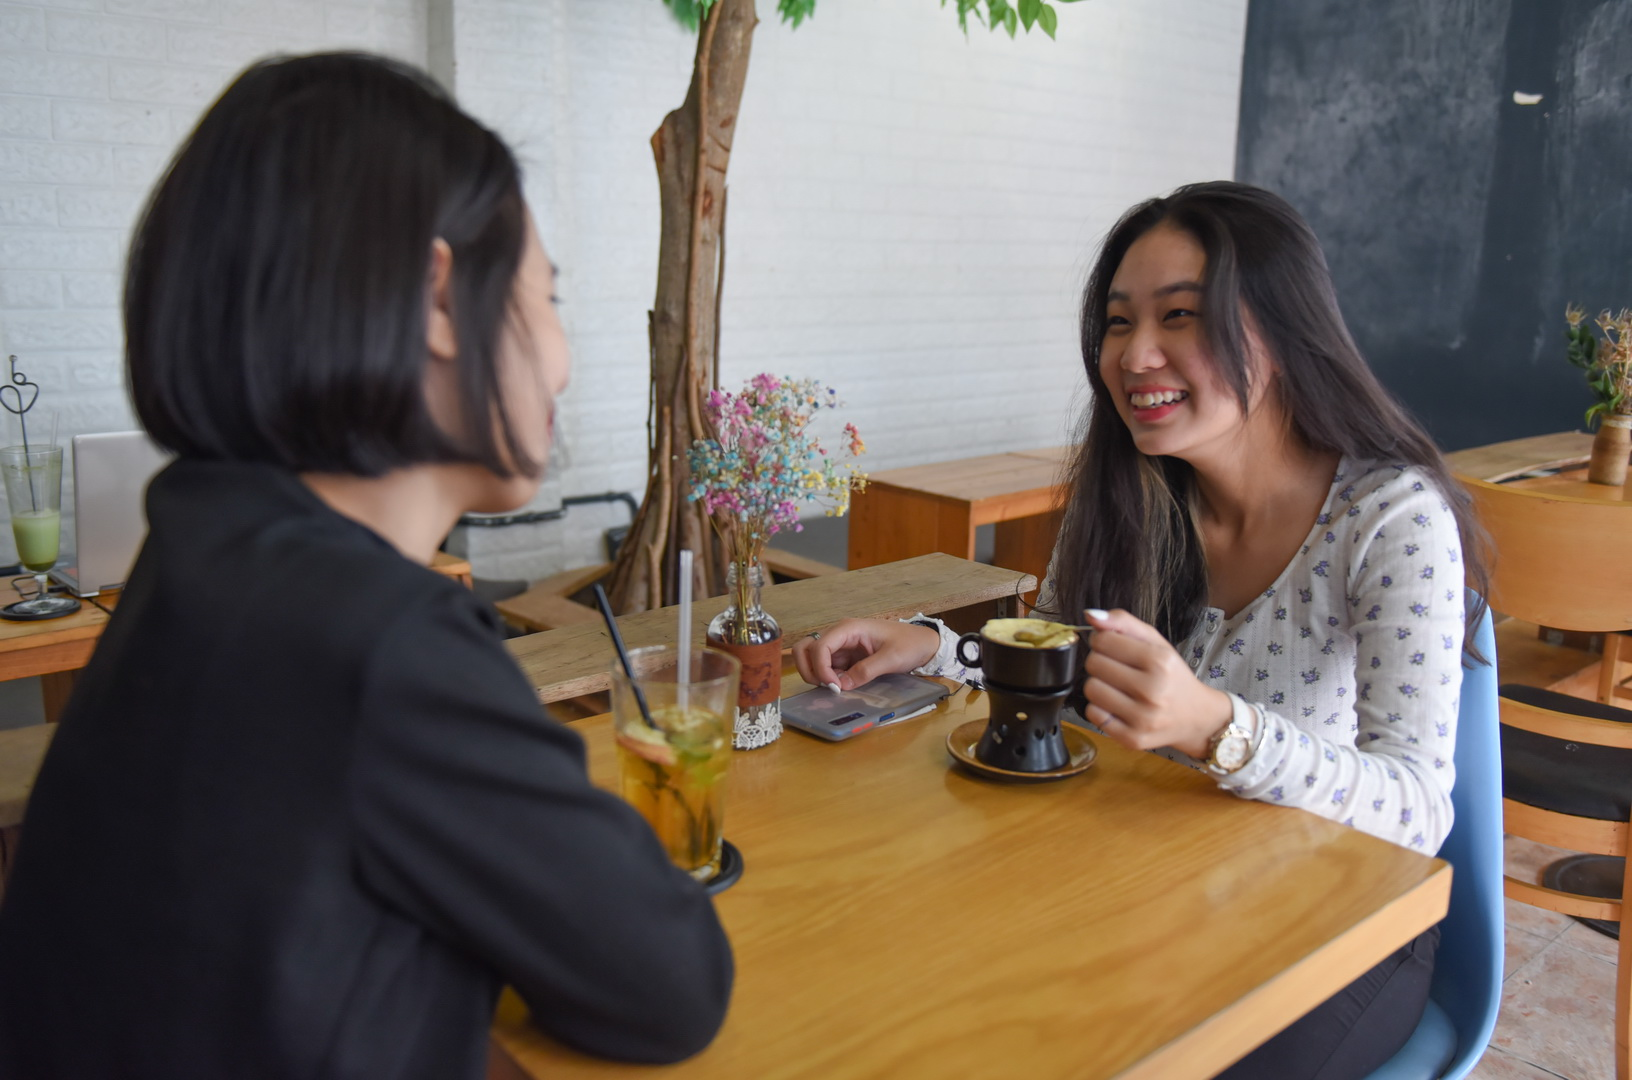 Nguyen Bao Ngan (right) from Thu Duc District enjoys egg coffee at Minh's shop. Photo: Ngoc Phuong/ Tuoi Tre